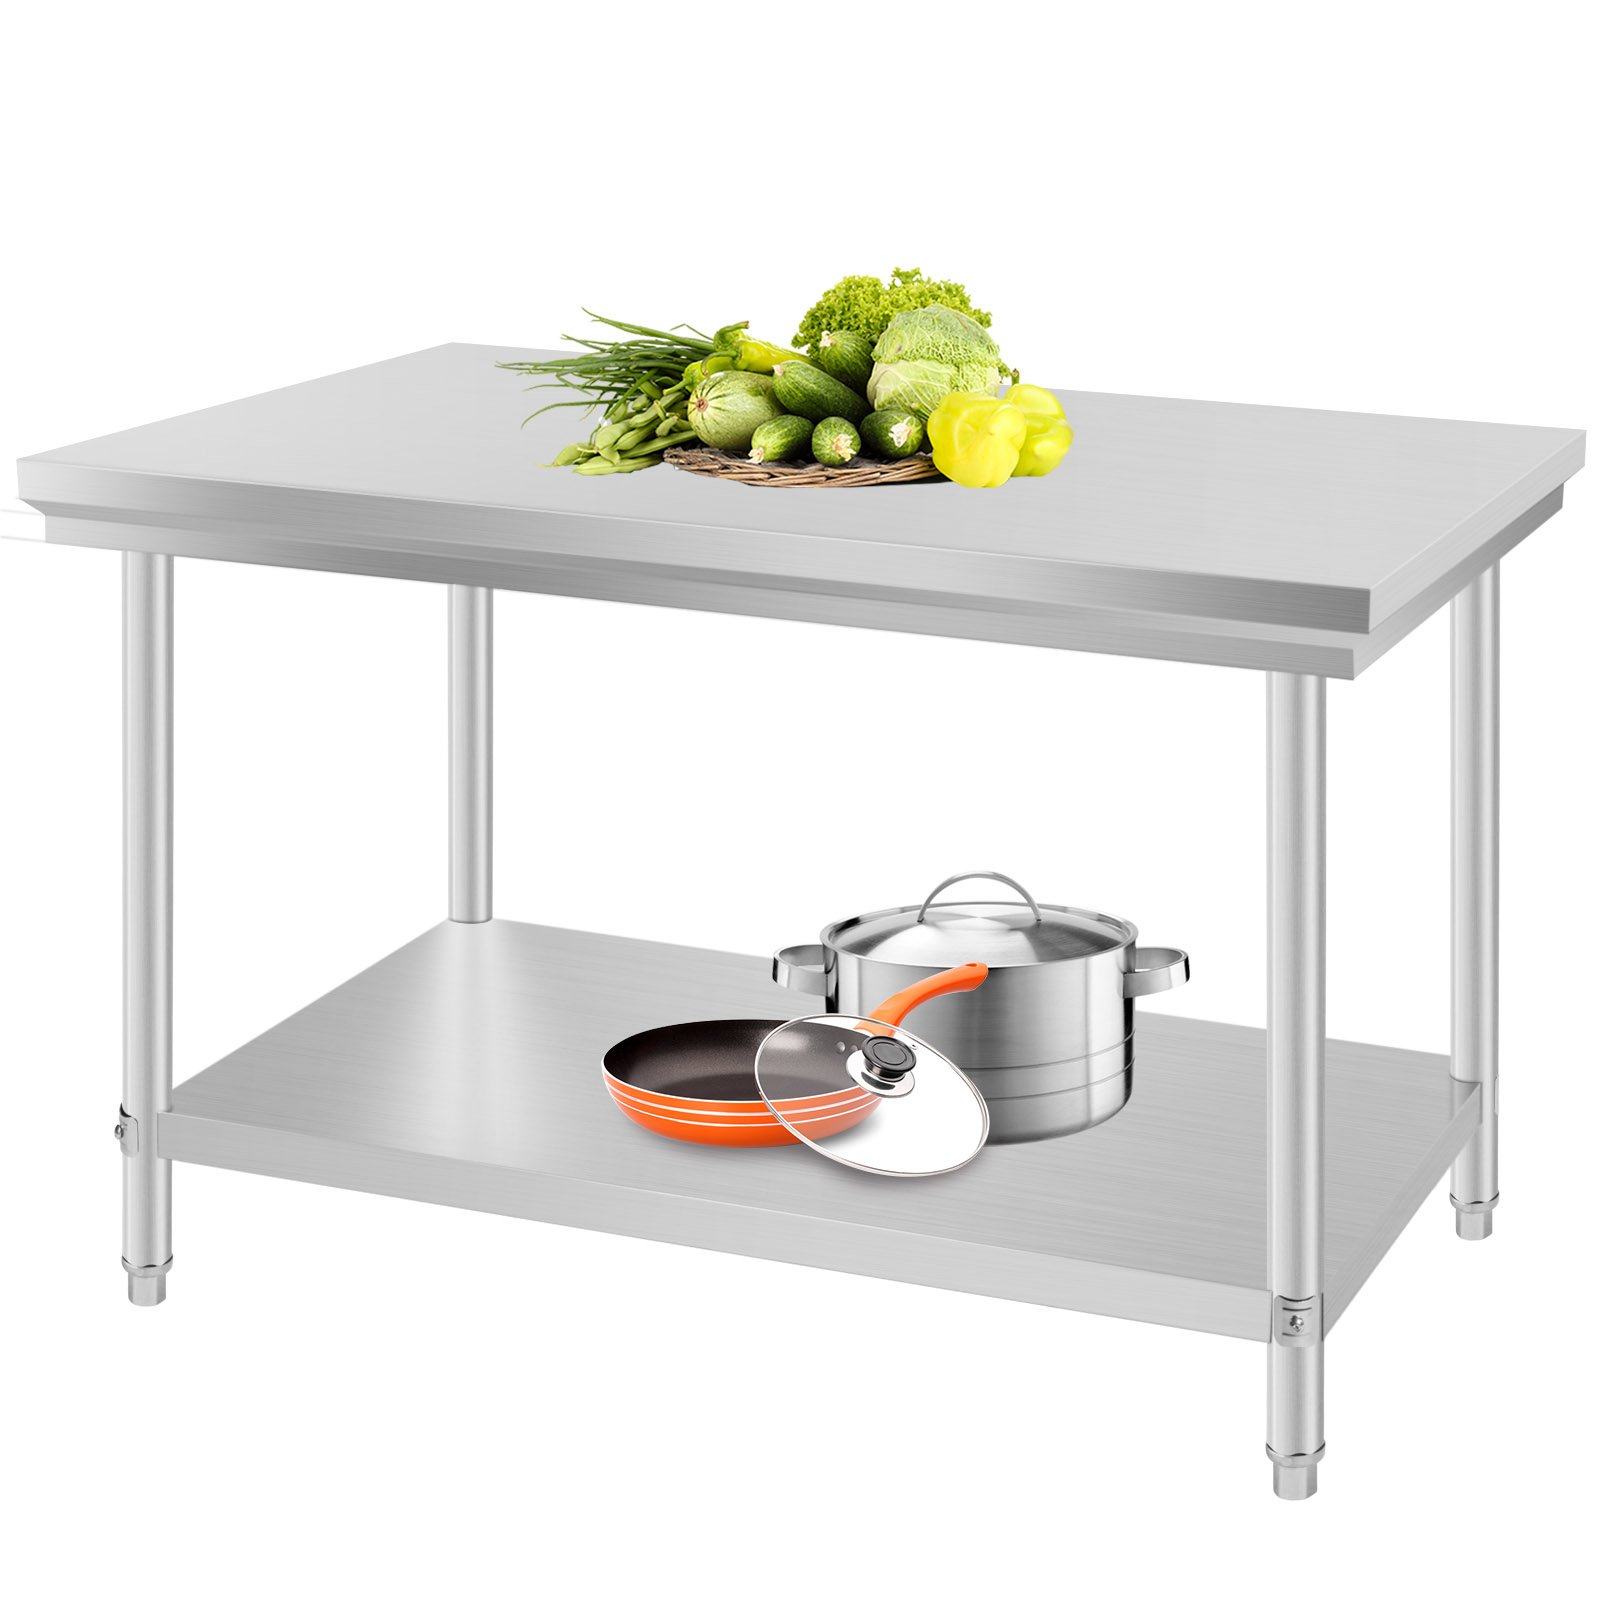 Stainless steel commercial kitchen work food prep table 24 x 48 new ebay - Steel kitchen tables ...